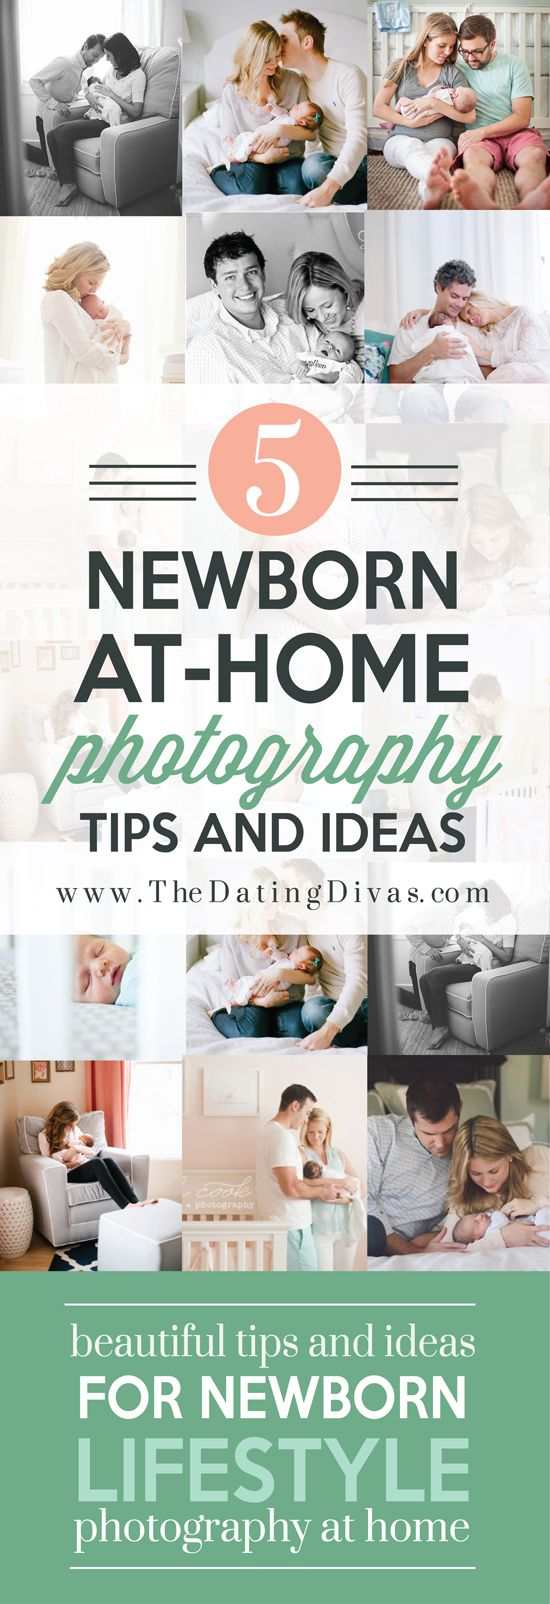 TONS of newborn photography inspiration and ideas in this post. Good ideas for beautiful lifestyle photos at home! I don't want to forget-pinning for later. www.TheDatingDivas.com